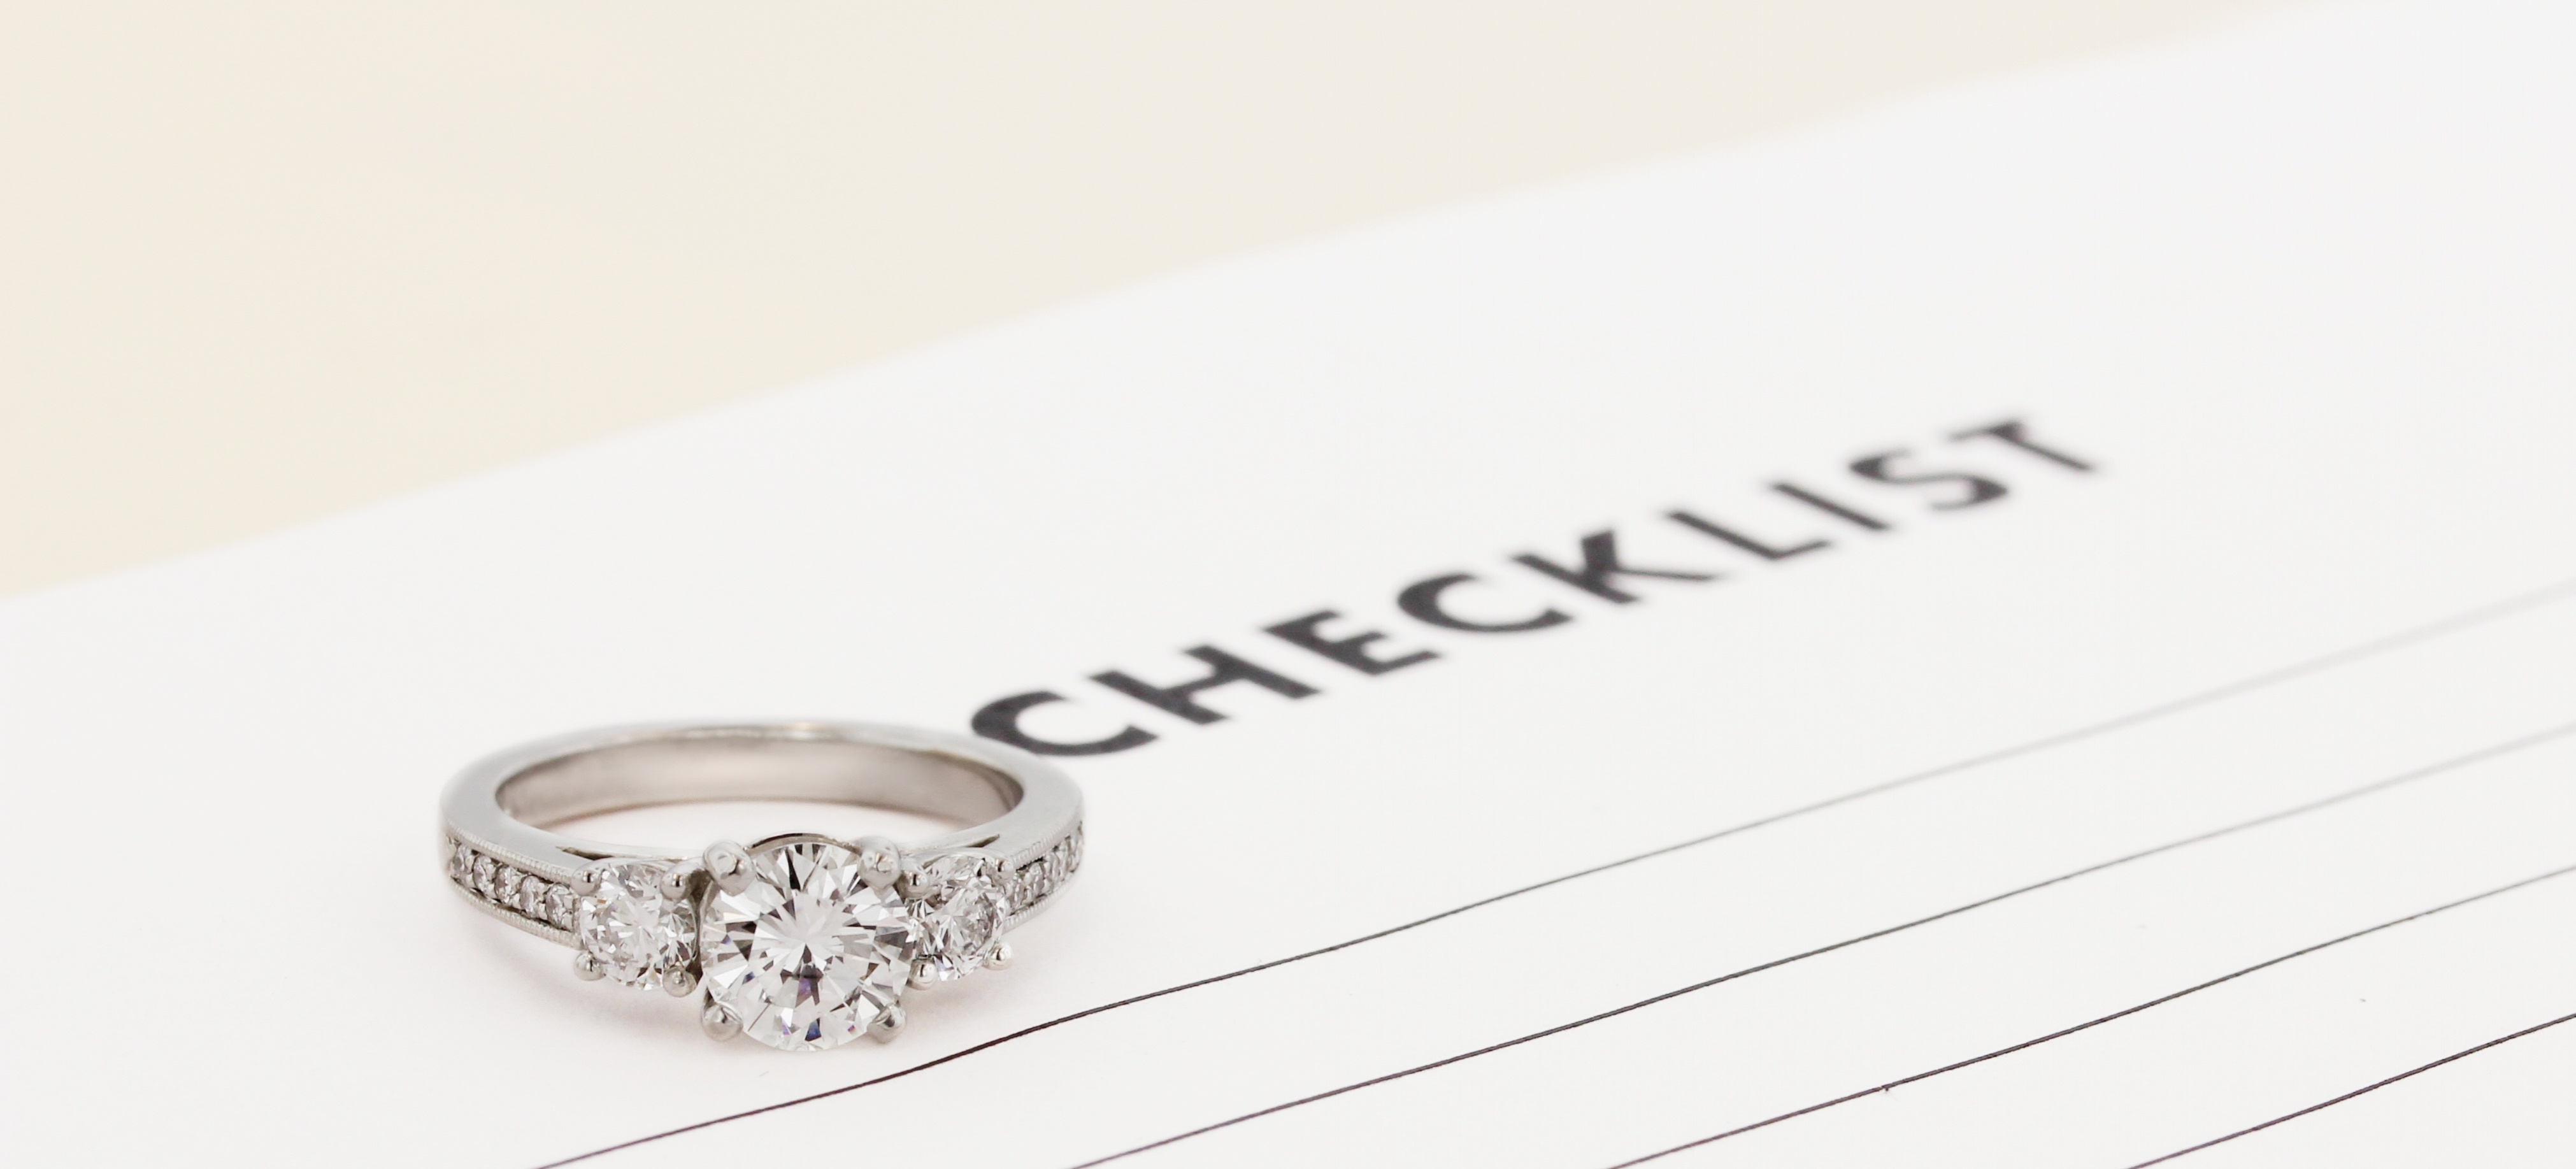 Tips For Saving For An Engagement Ring